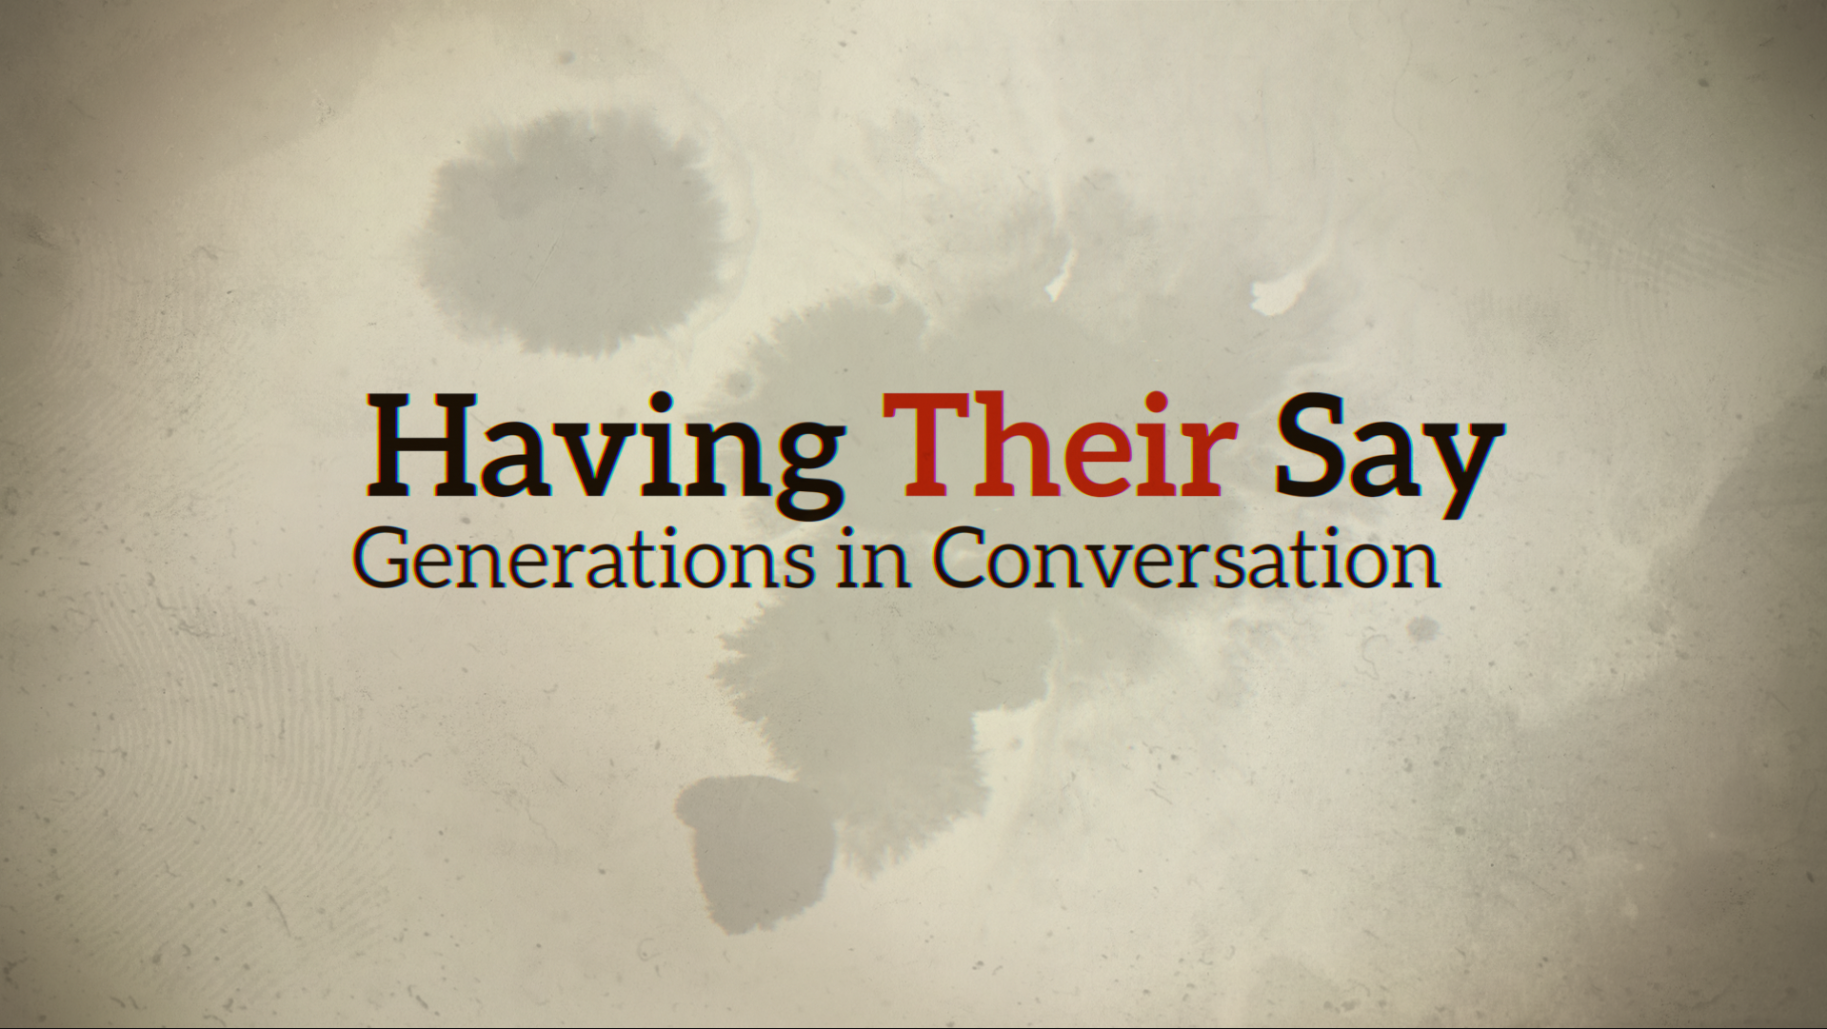 Having Their Say: Generations in Conversation, an oral history project filmed by Miceli Productions, initiated by Hartford Stage, inspired by the Delany Sisters.